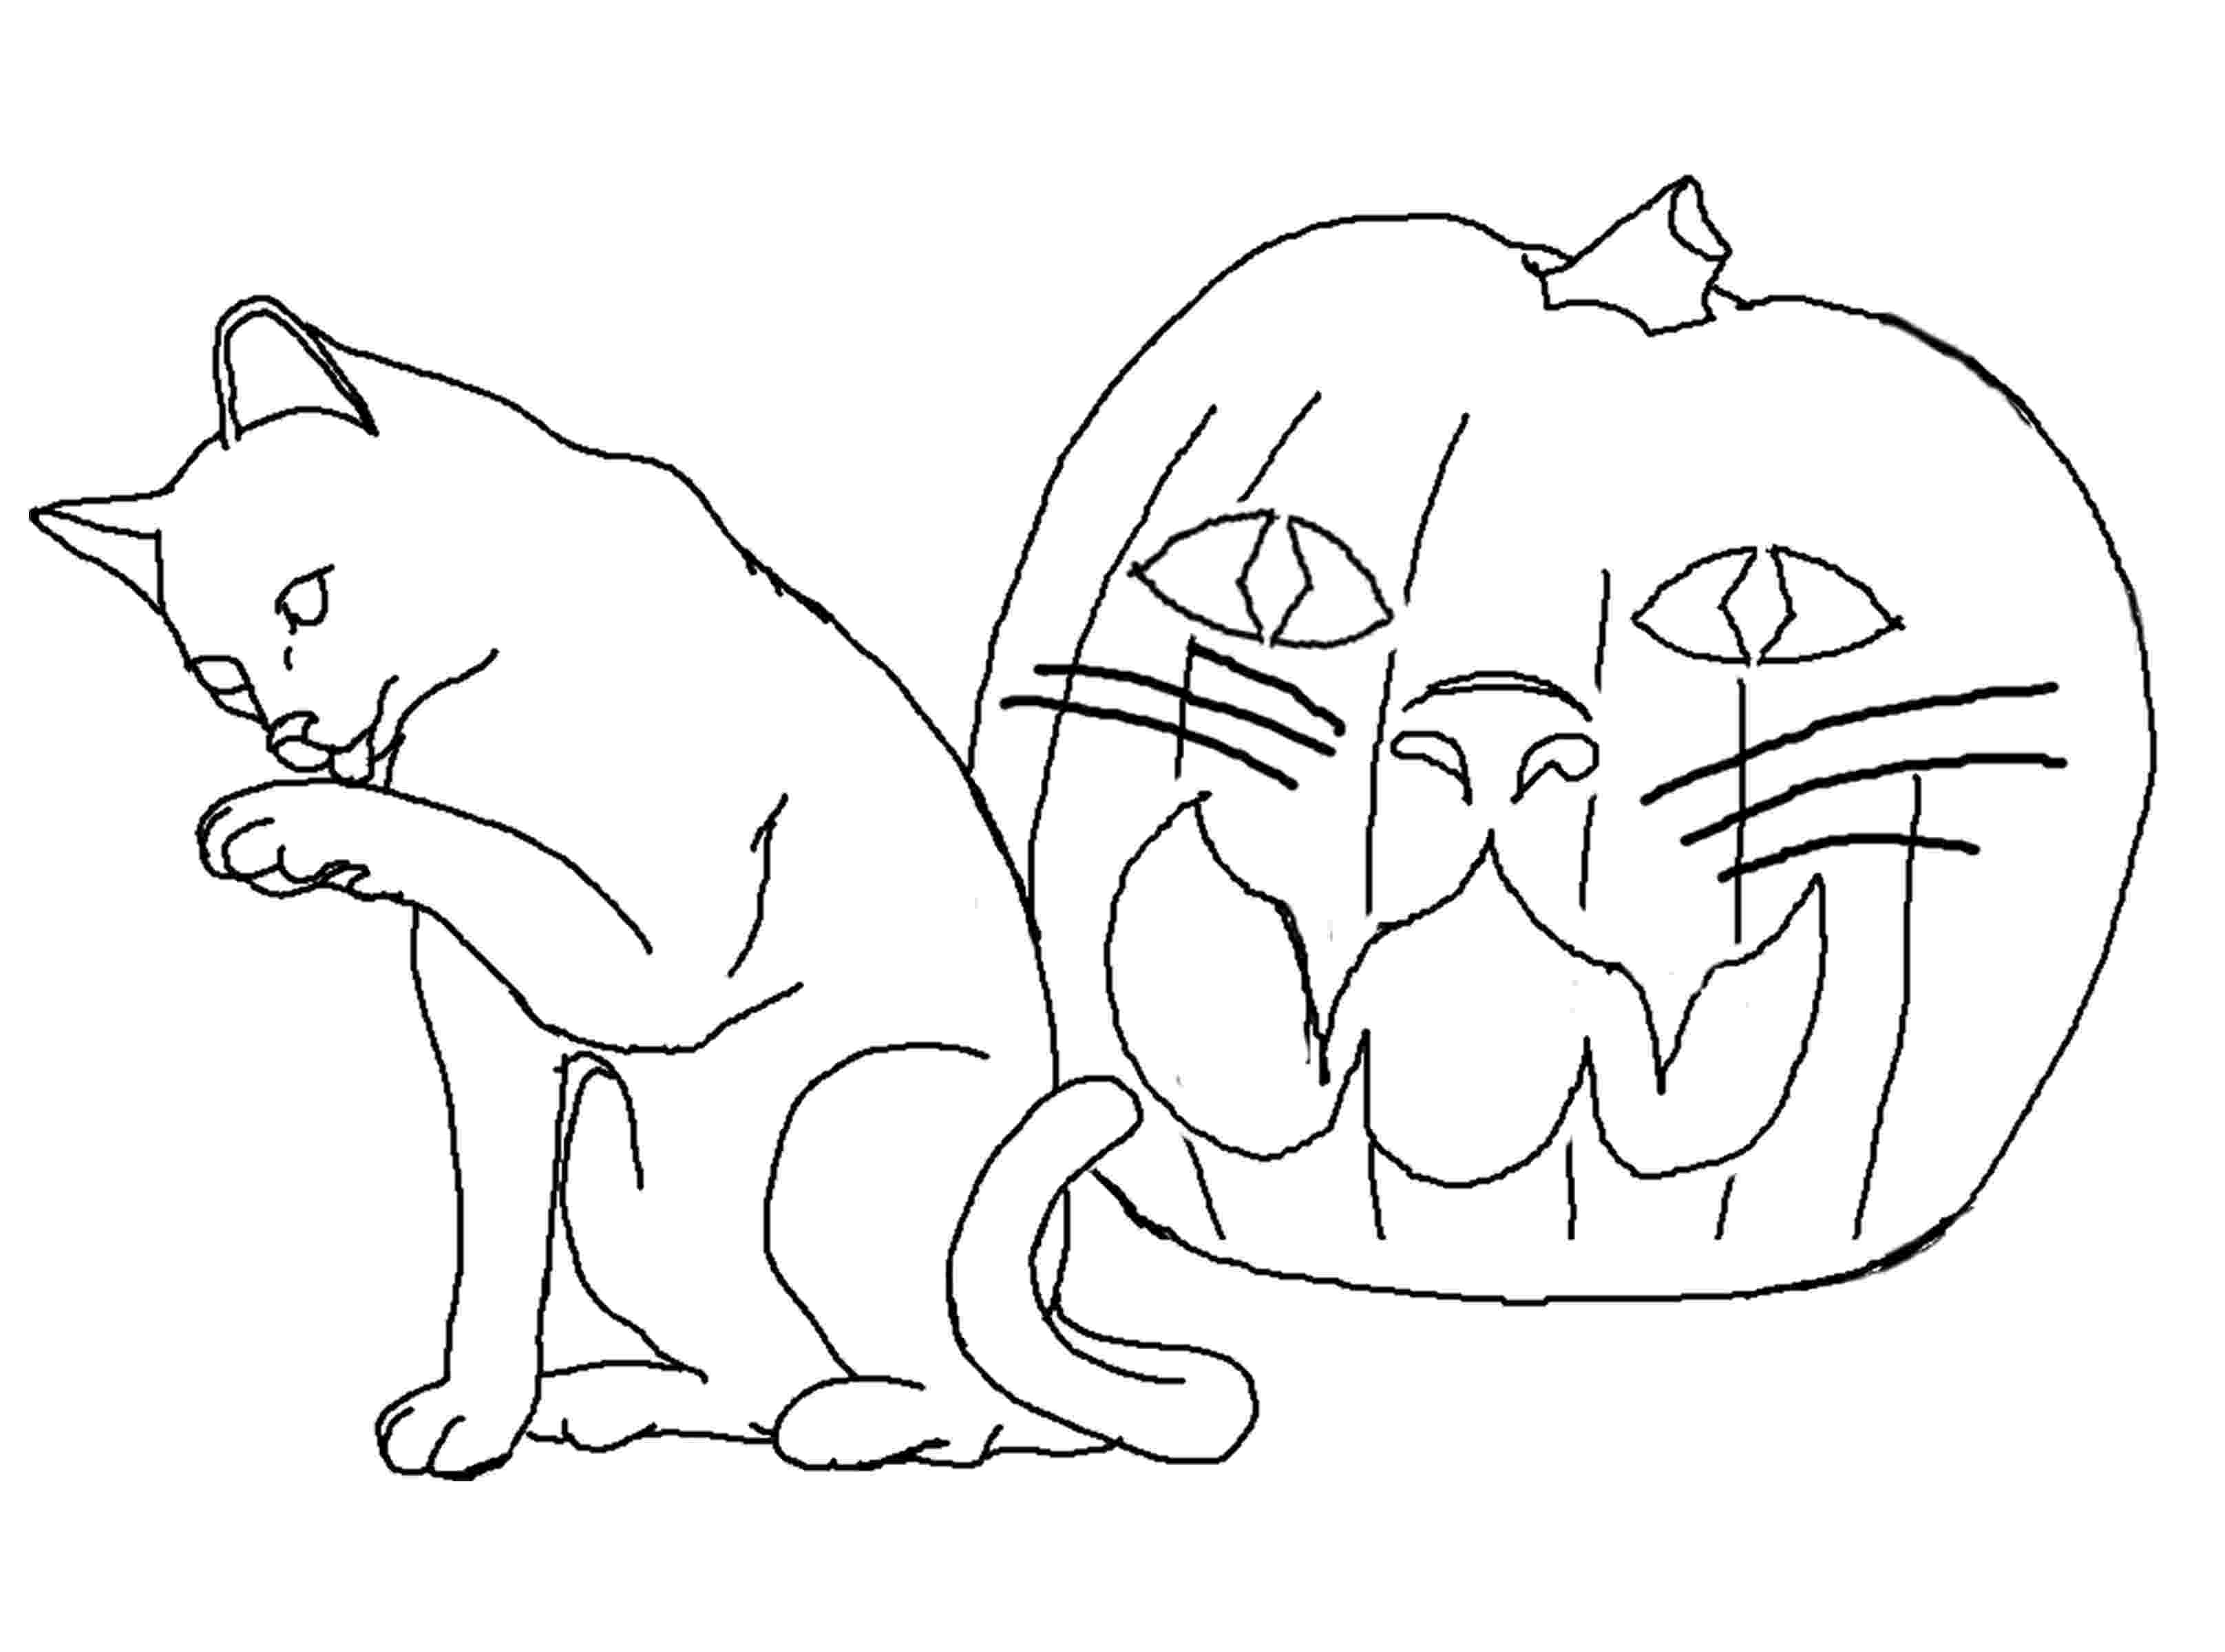 pictures of cats and kittens to color free printable cat coloring pages for kids kittens and of pictures cats color to